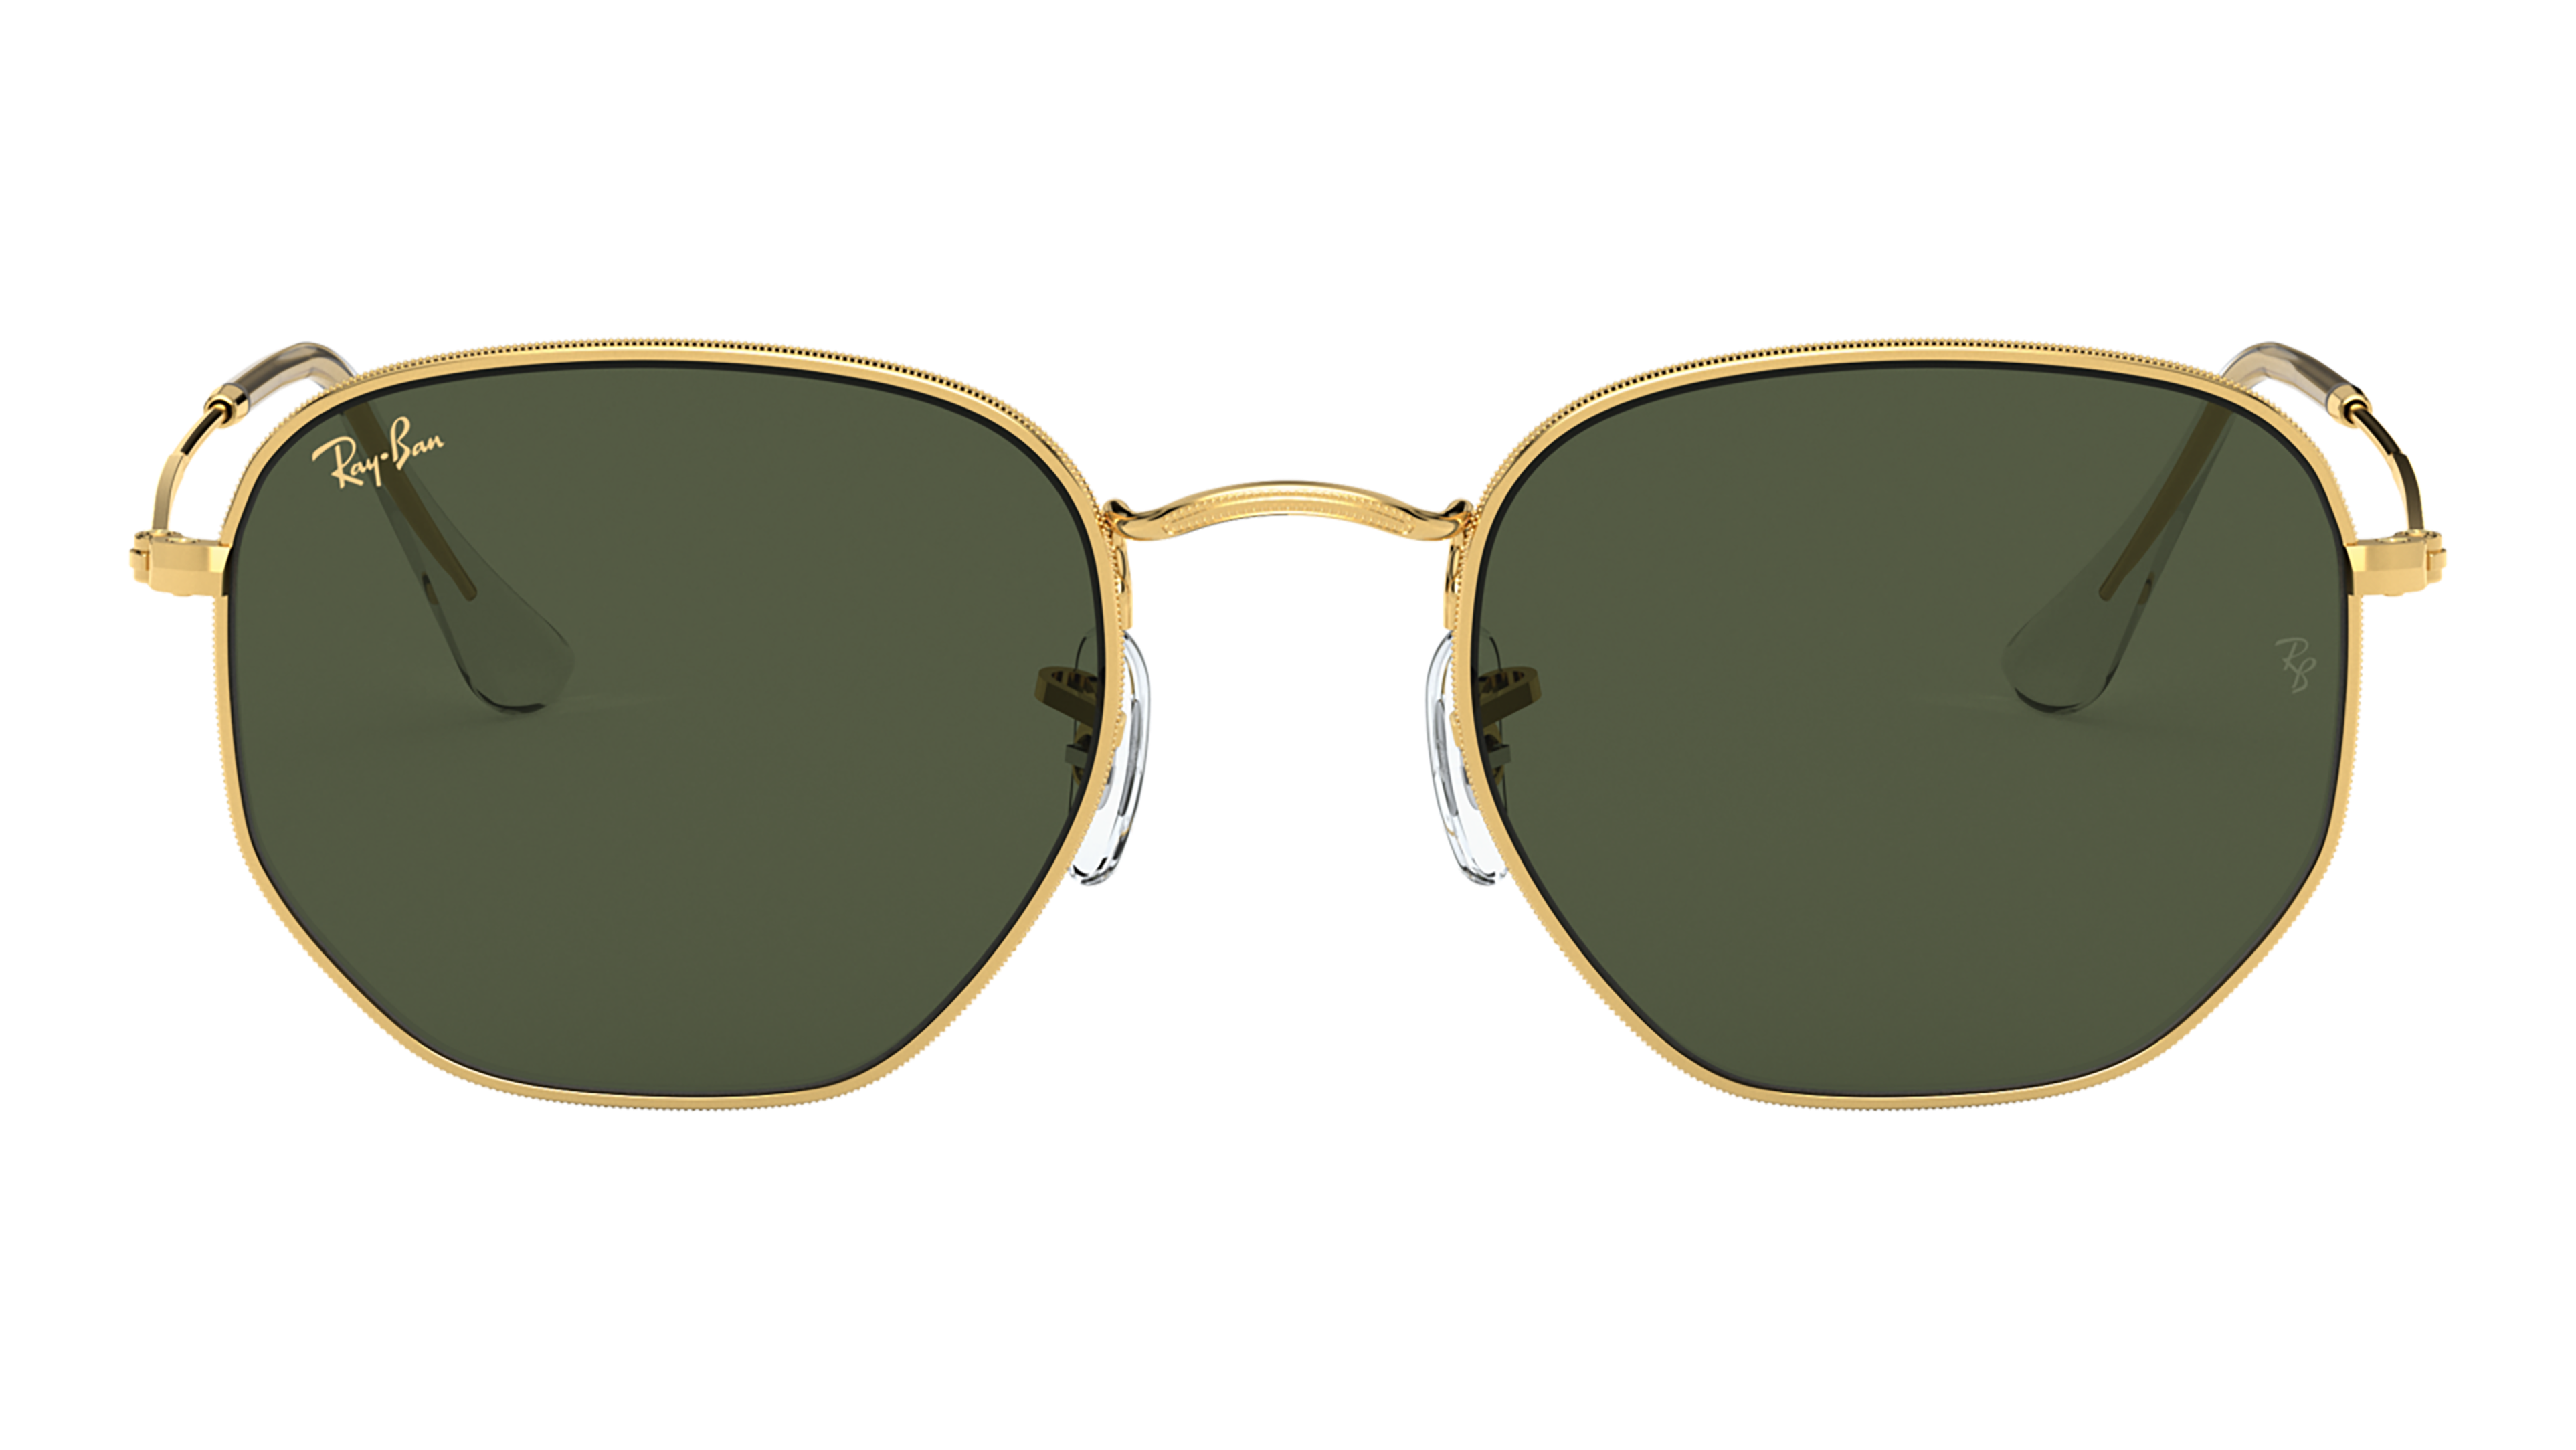 Front Ray-Ban Ray-Ban 0RB3548 919631 54/21 Goud/Groen